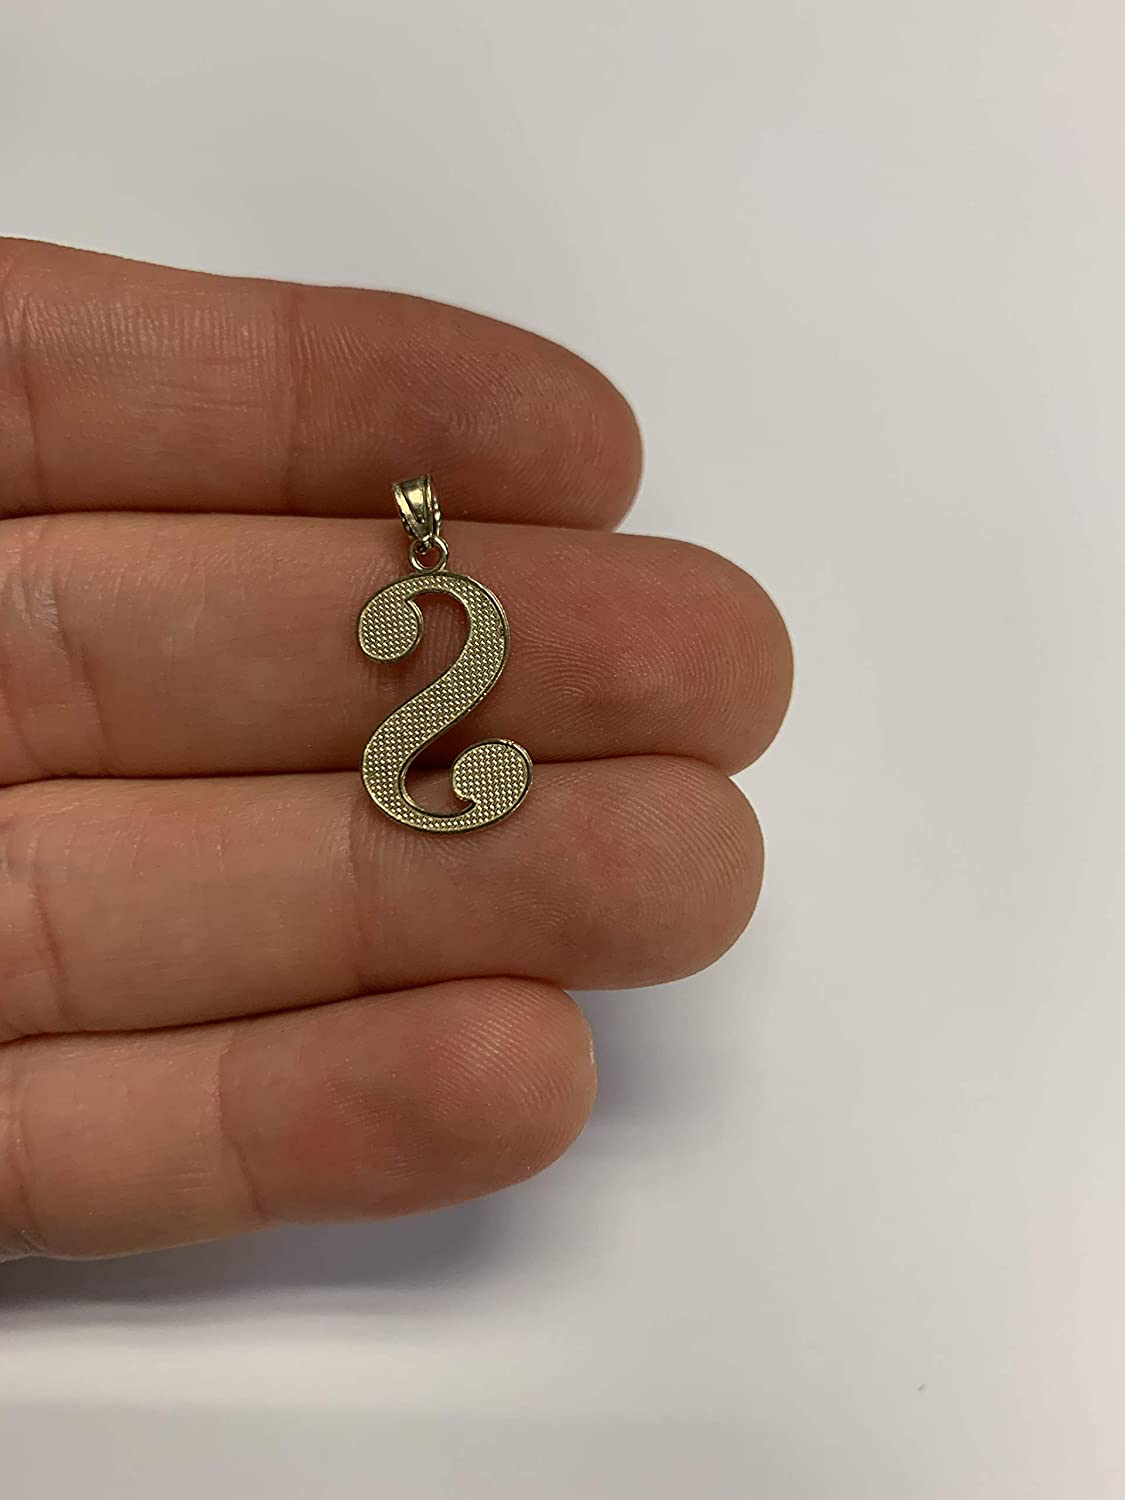 English Alpahbet A-Z Letter Charm with Diamond Cut Ice on Fire Jewelry 10k Solid Real Gold Cursive Initial Pendant